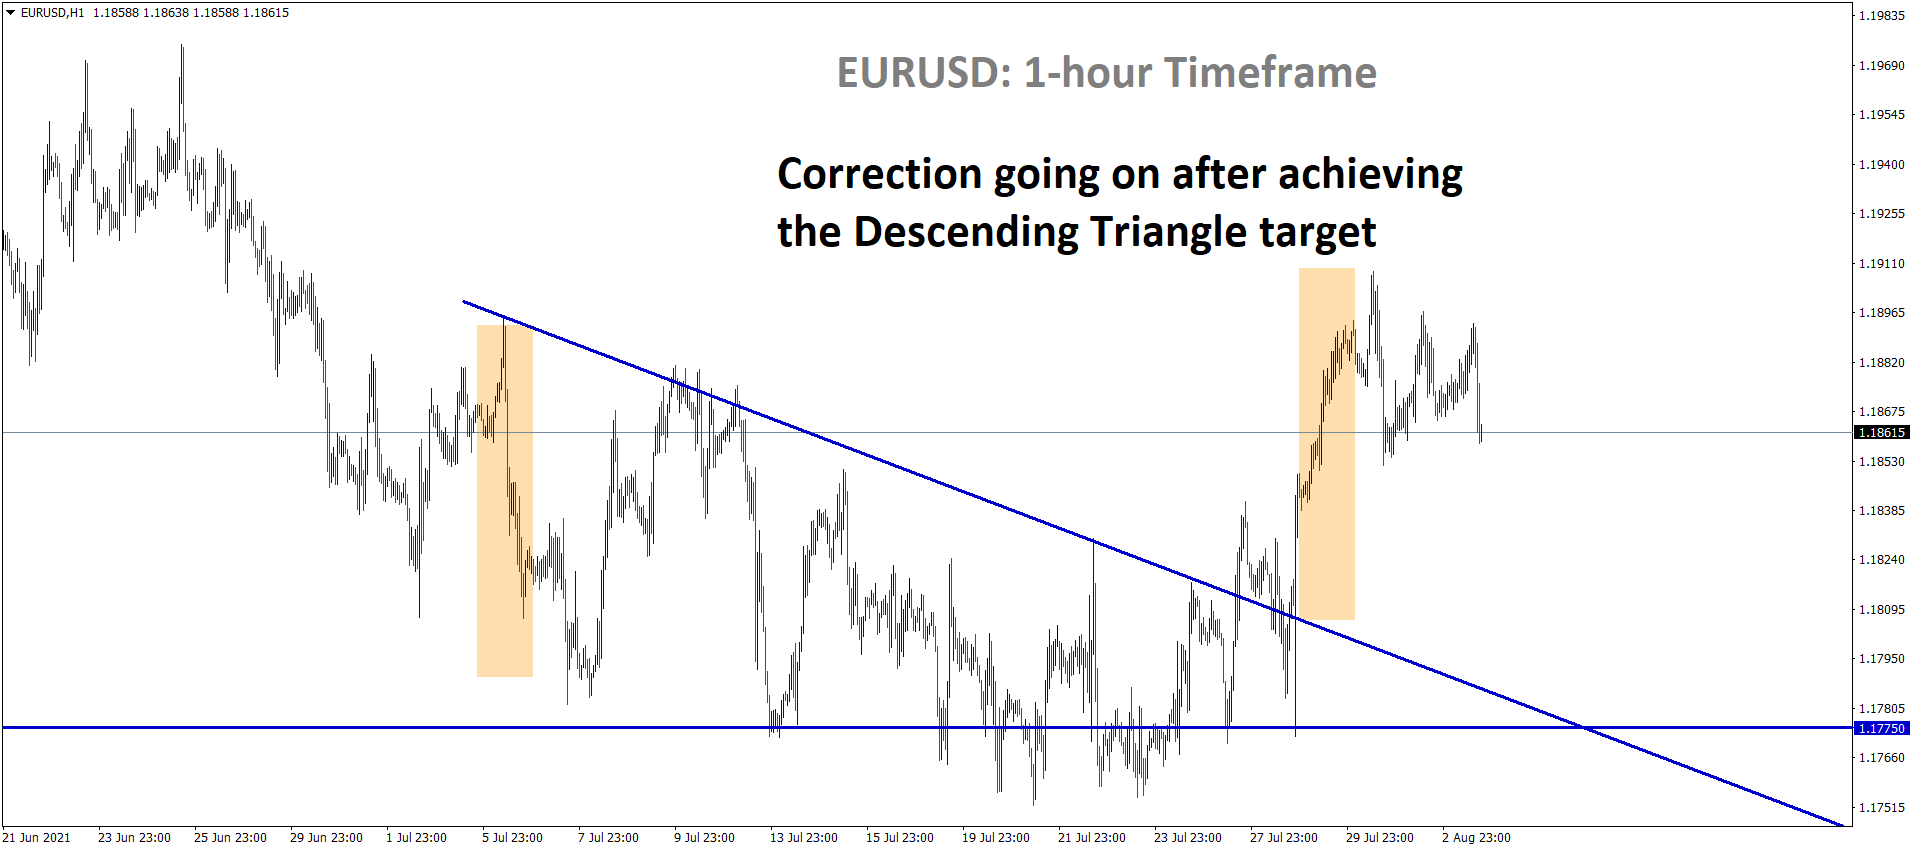 EURUSD Correction going on after achieving the descending triangle target in the 1 hour timeframe chart